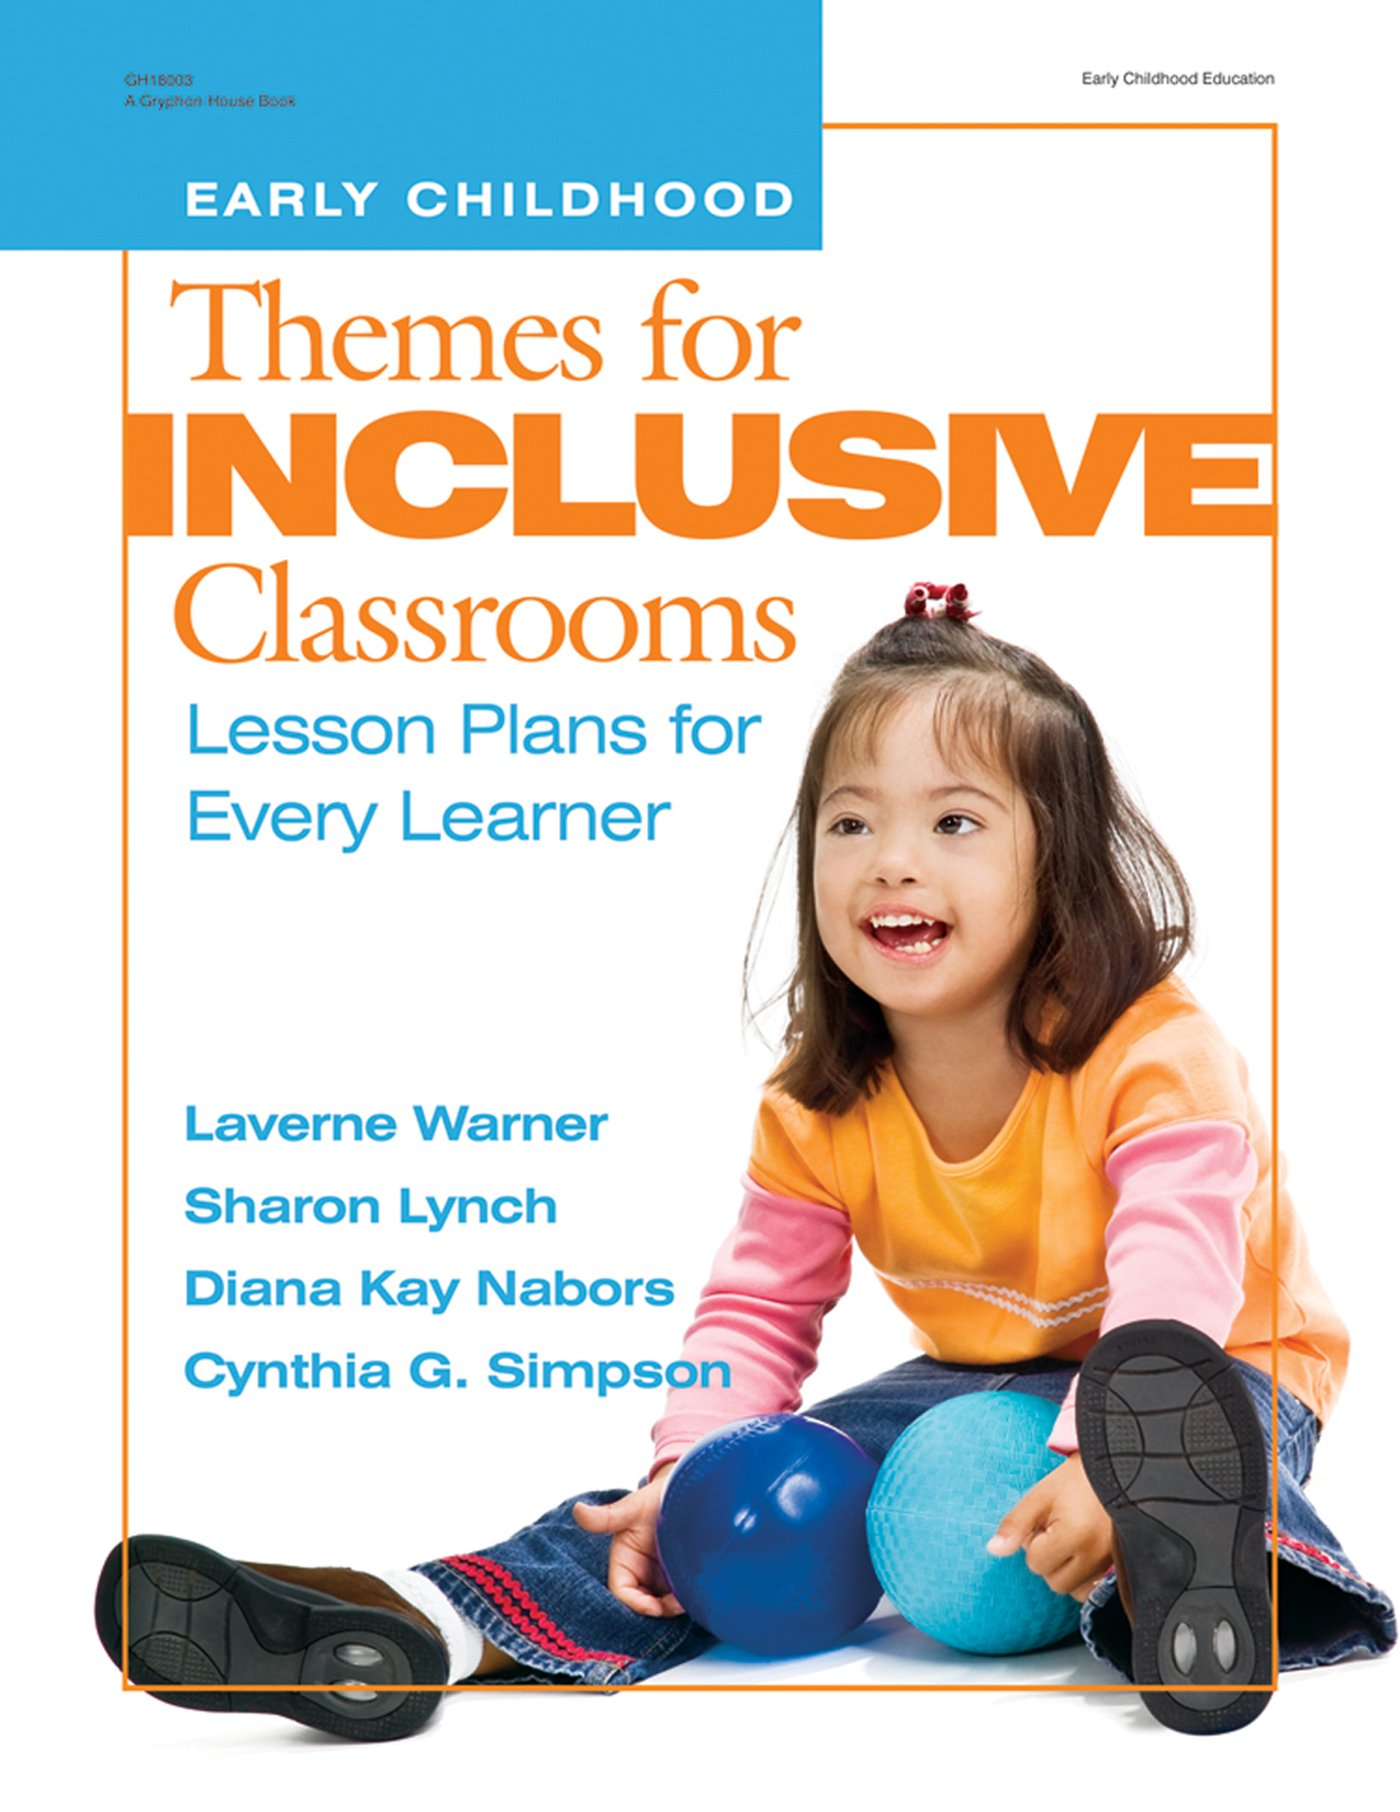 Themes for Inclusive Classrooms: Lesson Plans for Every Learner (Early Childhood Education) pdf